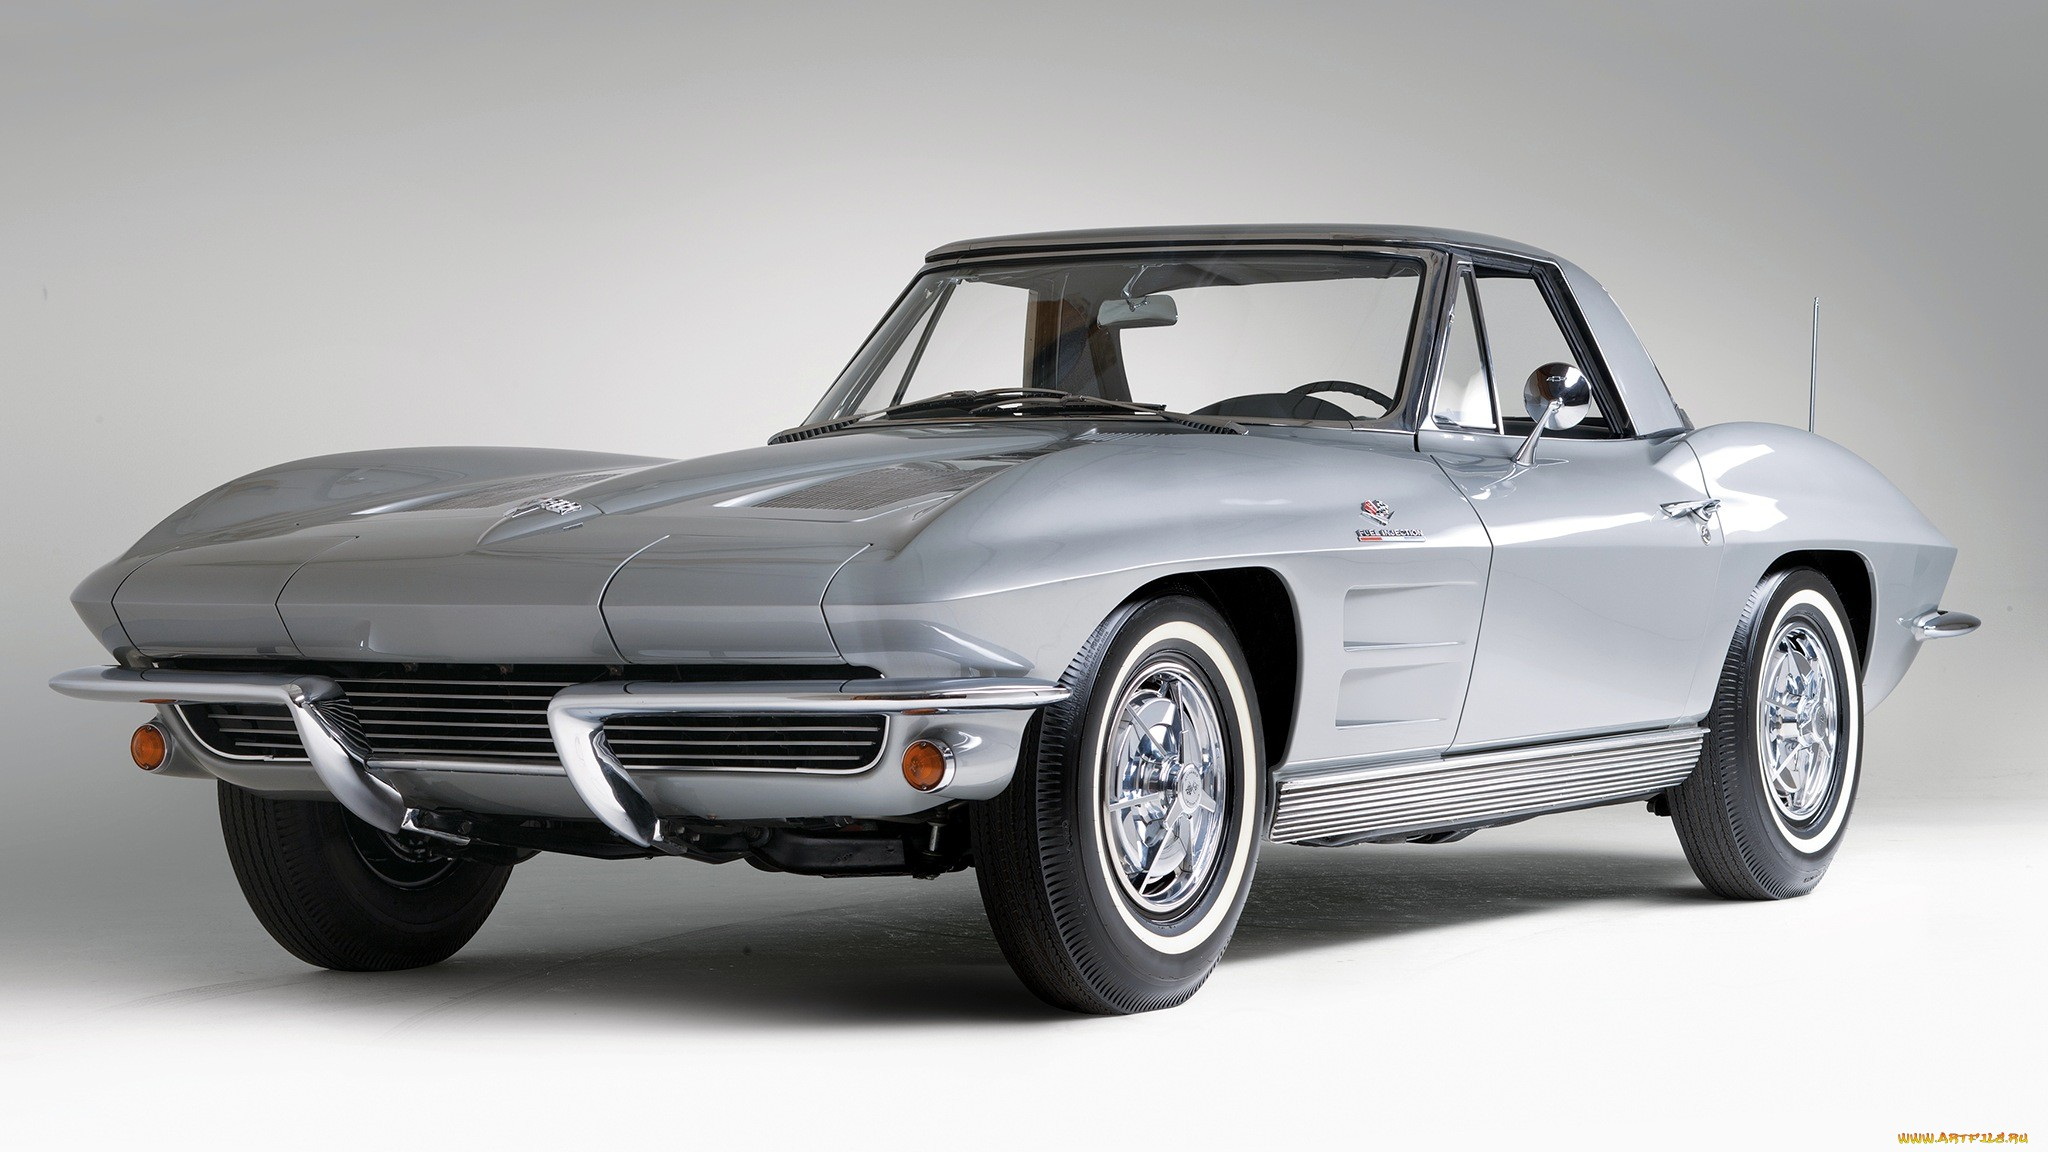 1963 Chevrolet Corvette Sting Ray supercar classic muscle cars 2048x1152